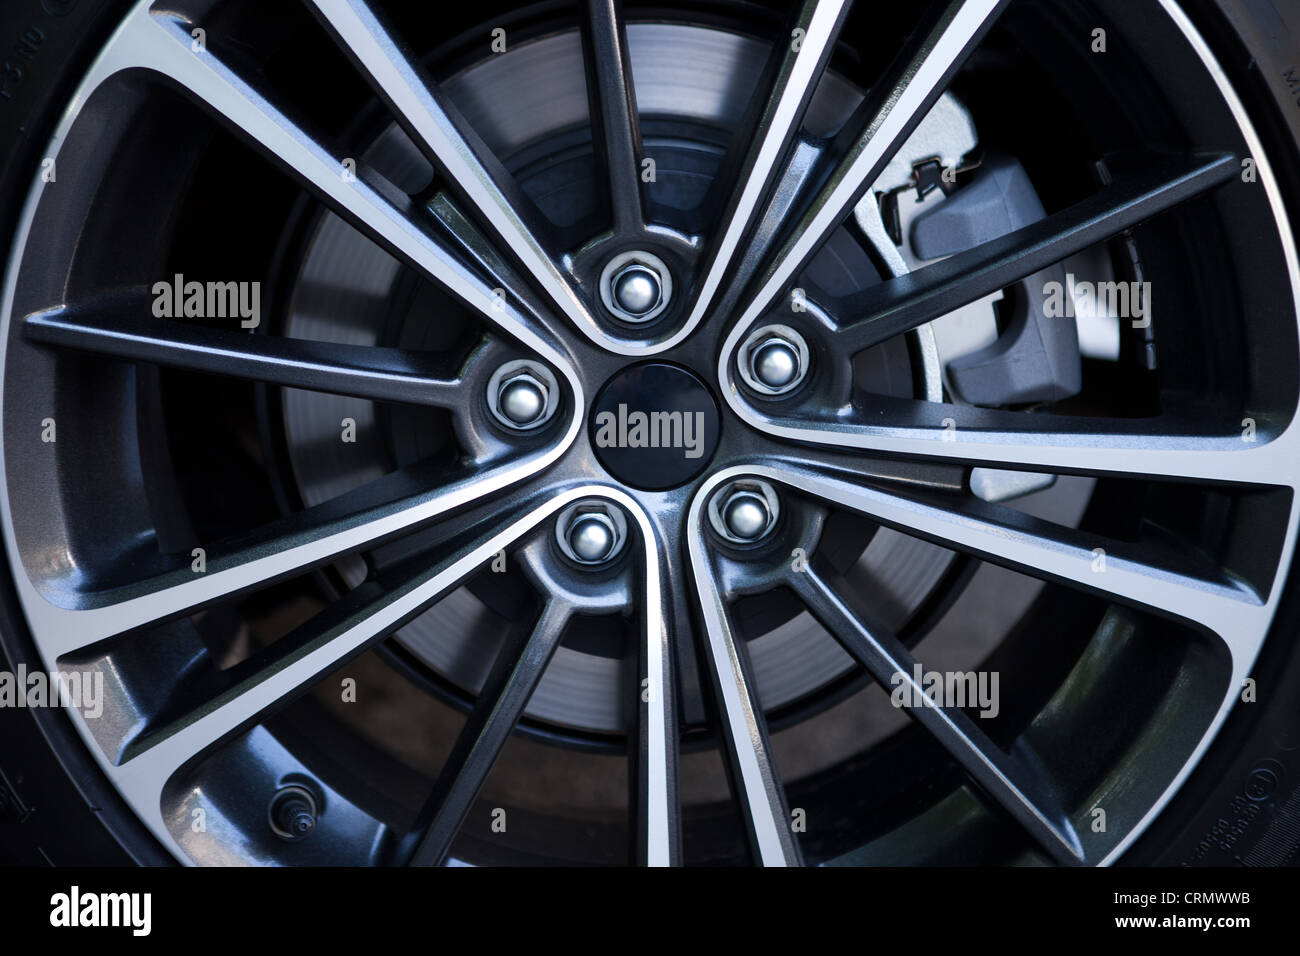 Aluminum Alloy Sports Car Wheel - Stock Image